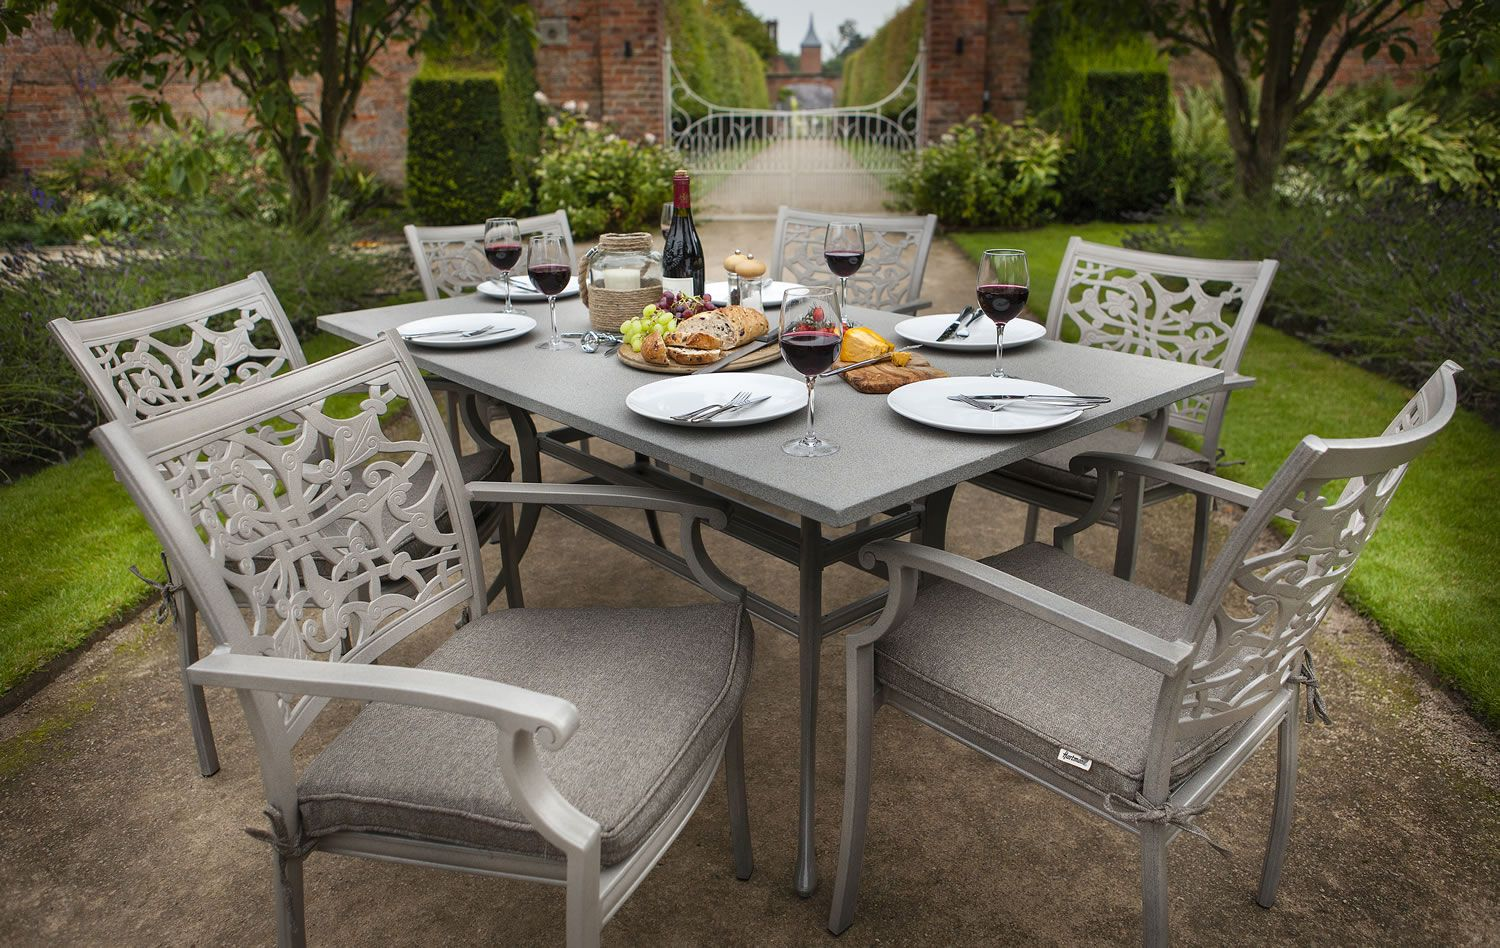 View the hartman celtic 6 seater rectangular set in riven with spraystone table top outdoor stone